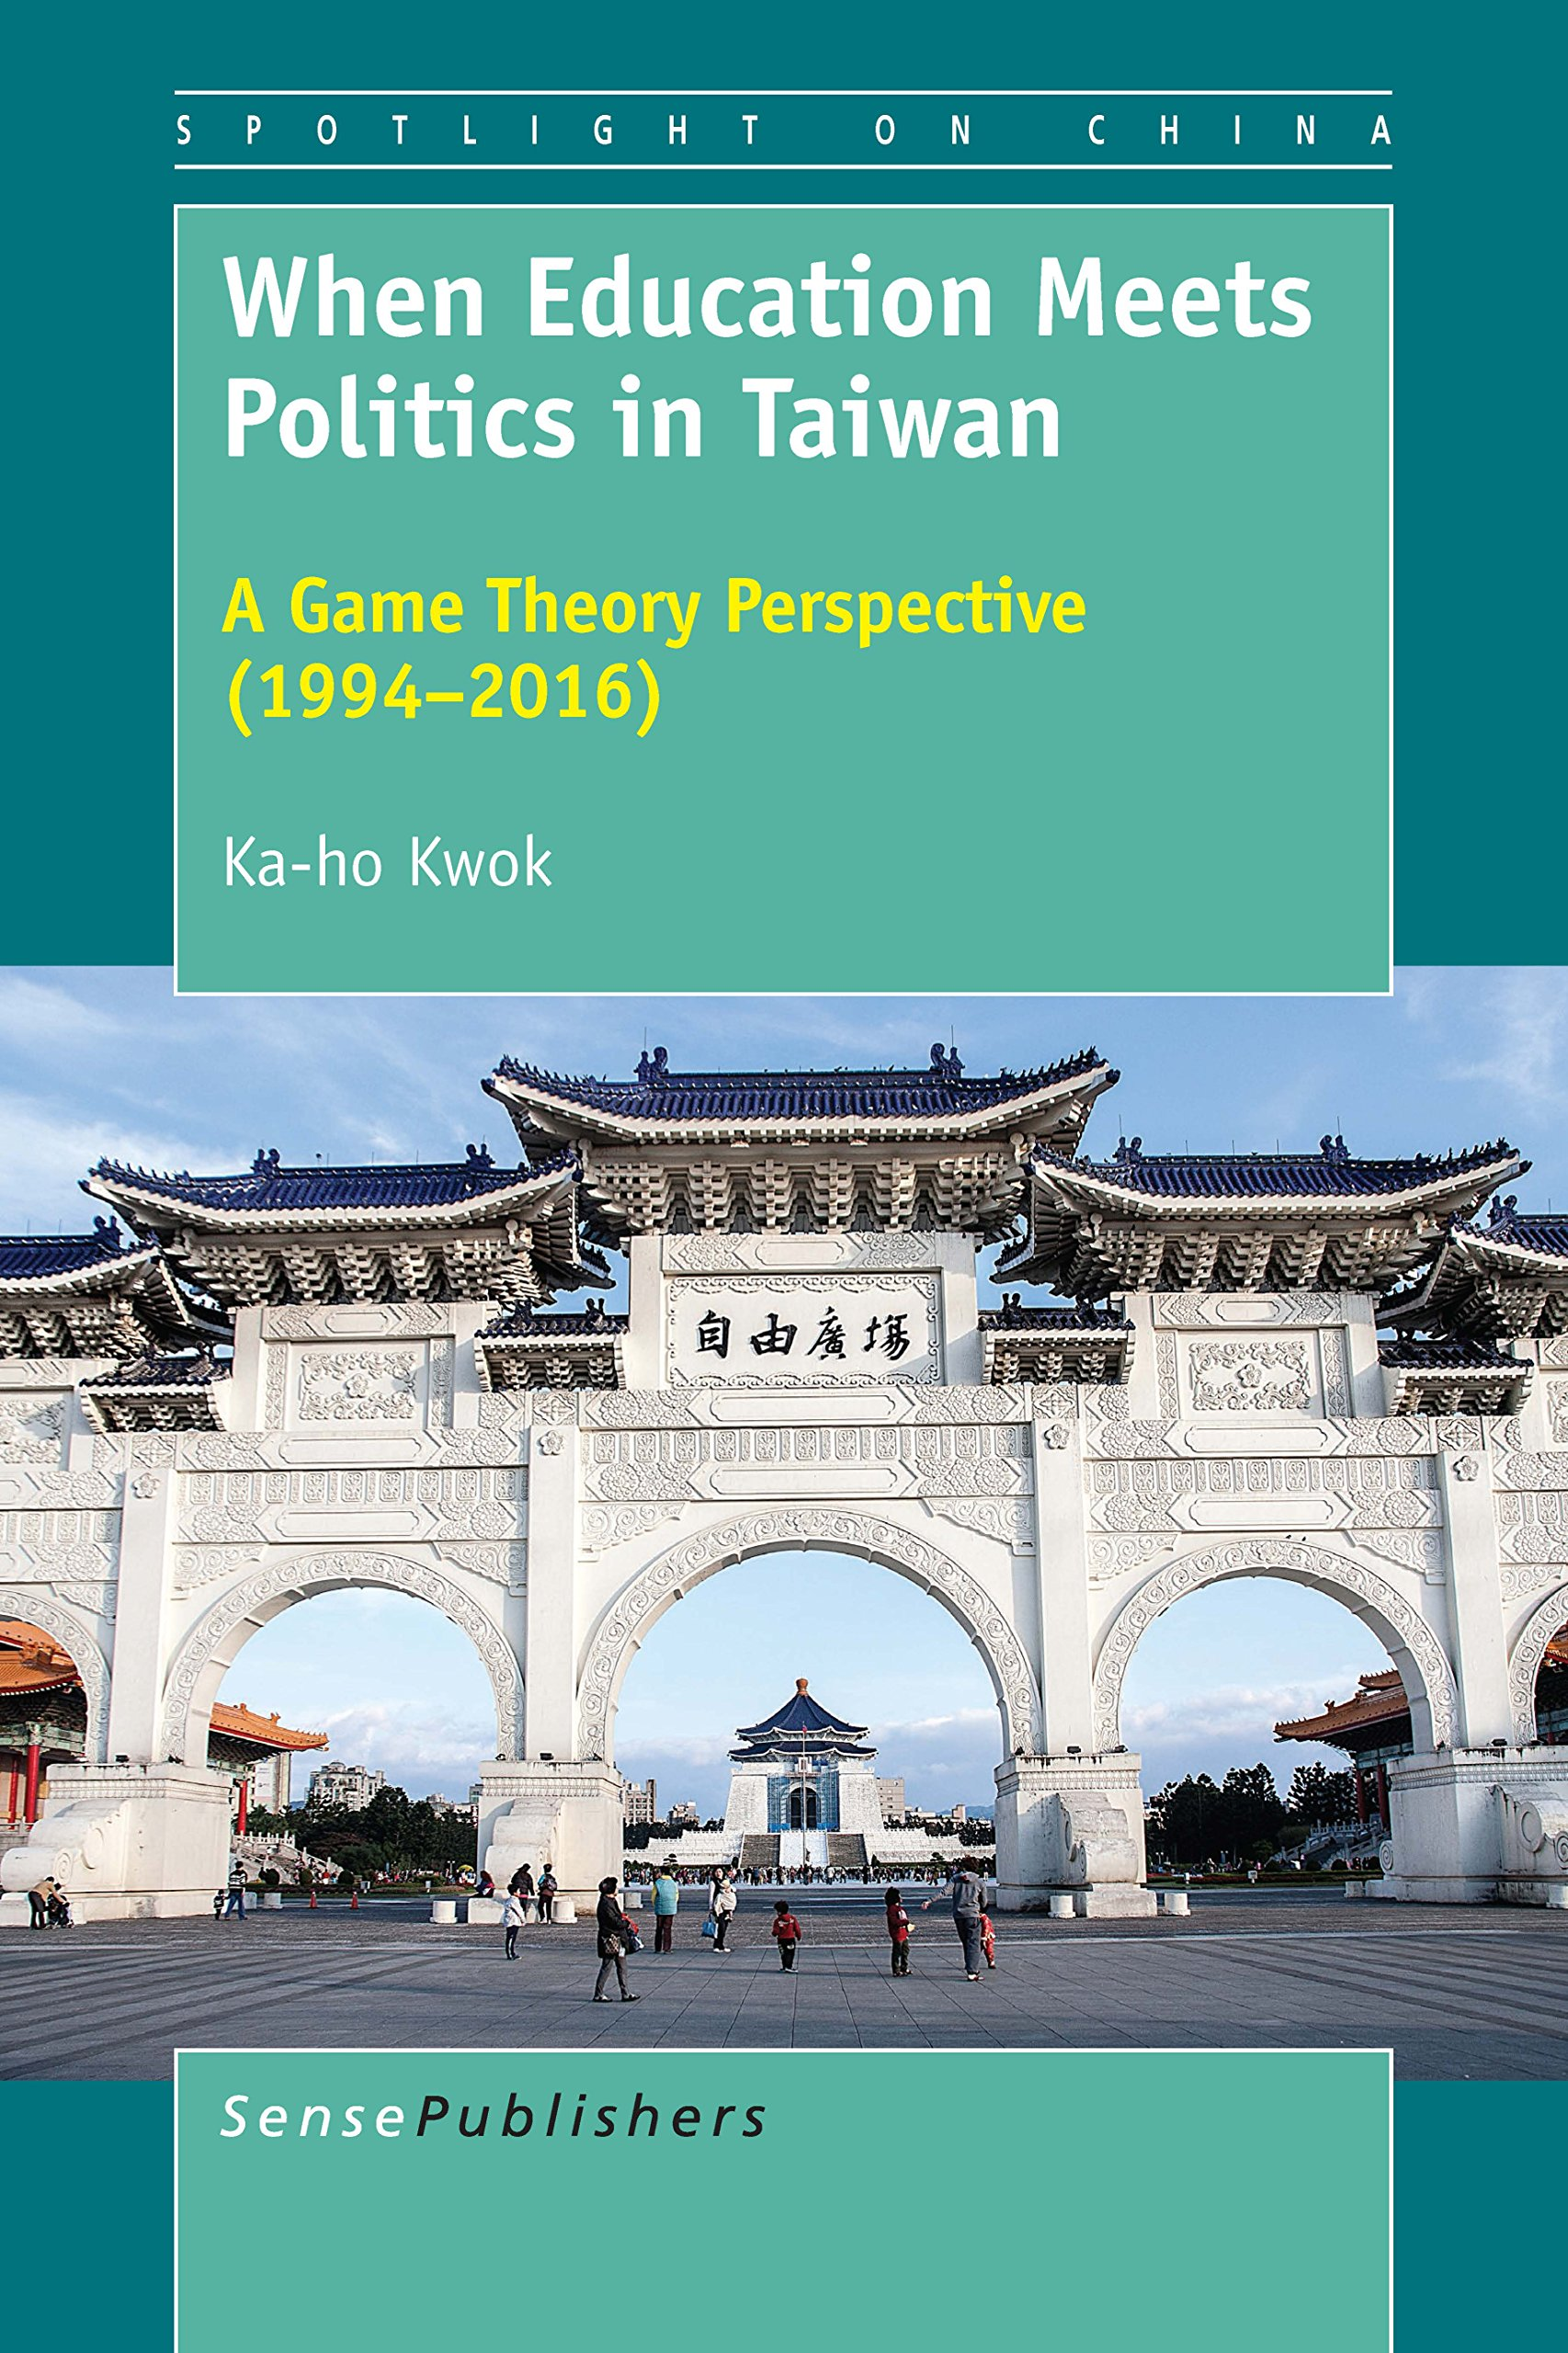 When Education Meets Politics in Taiwan (Spotlight on China